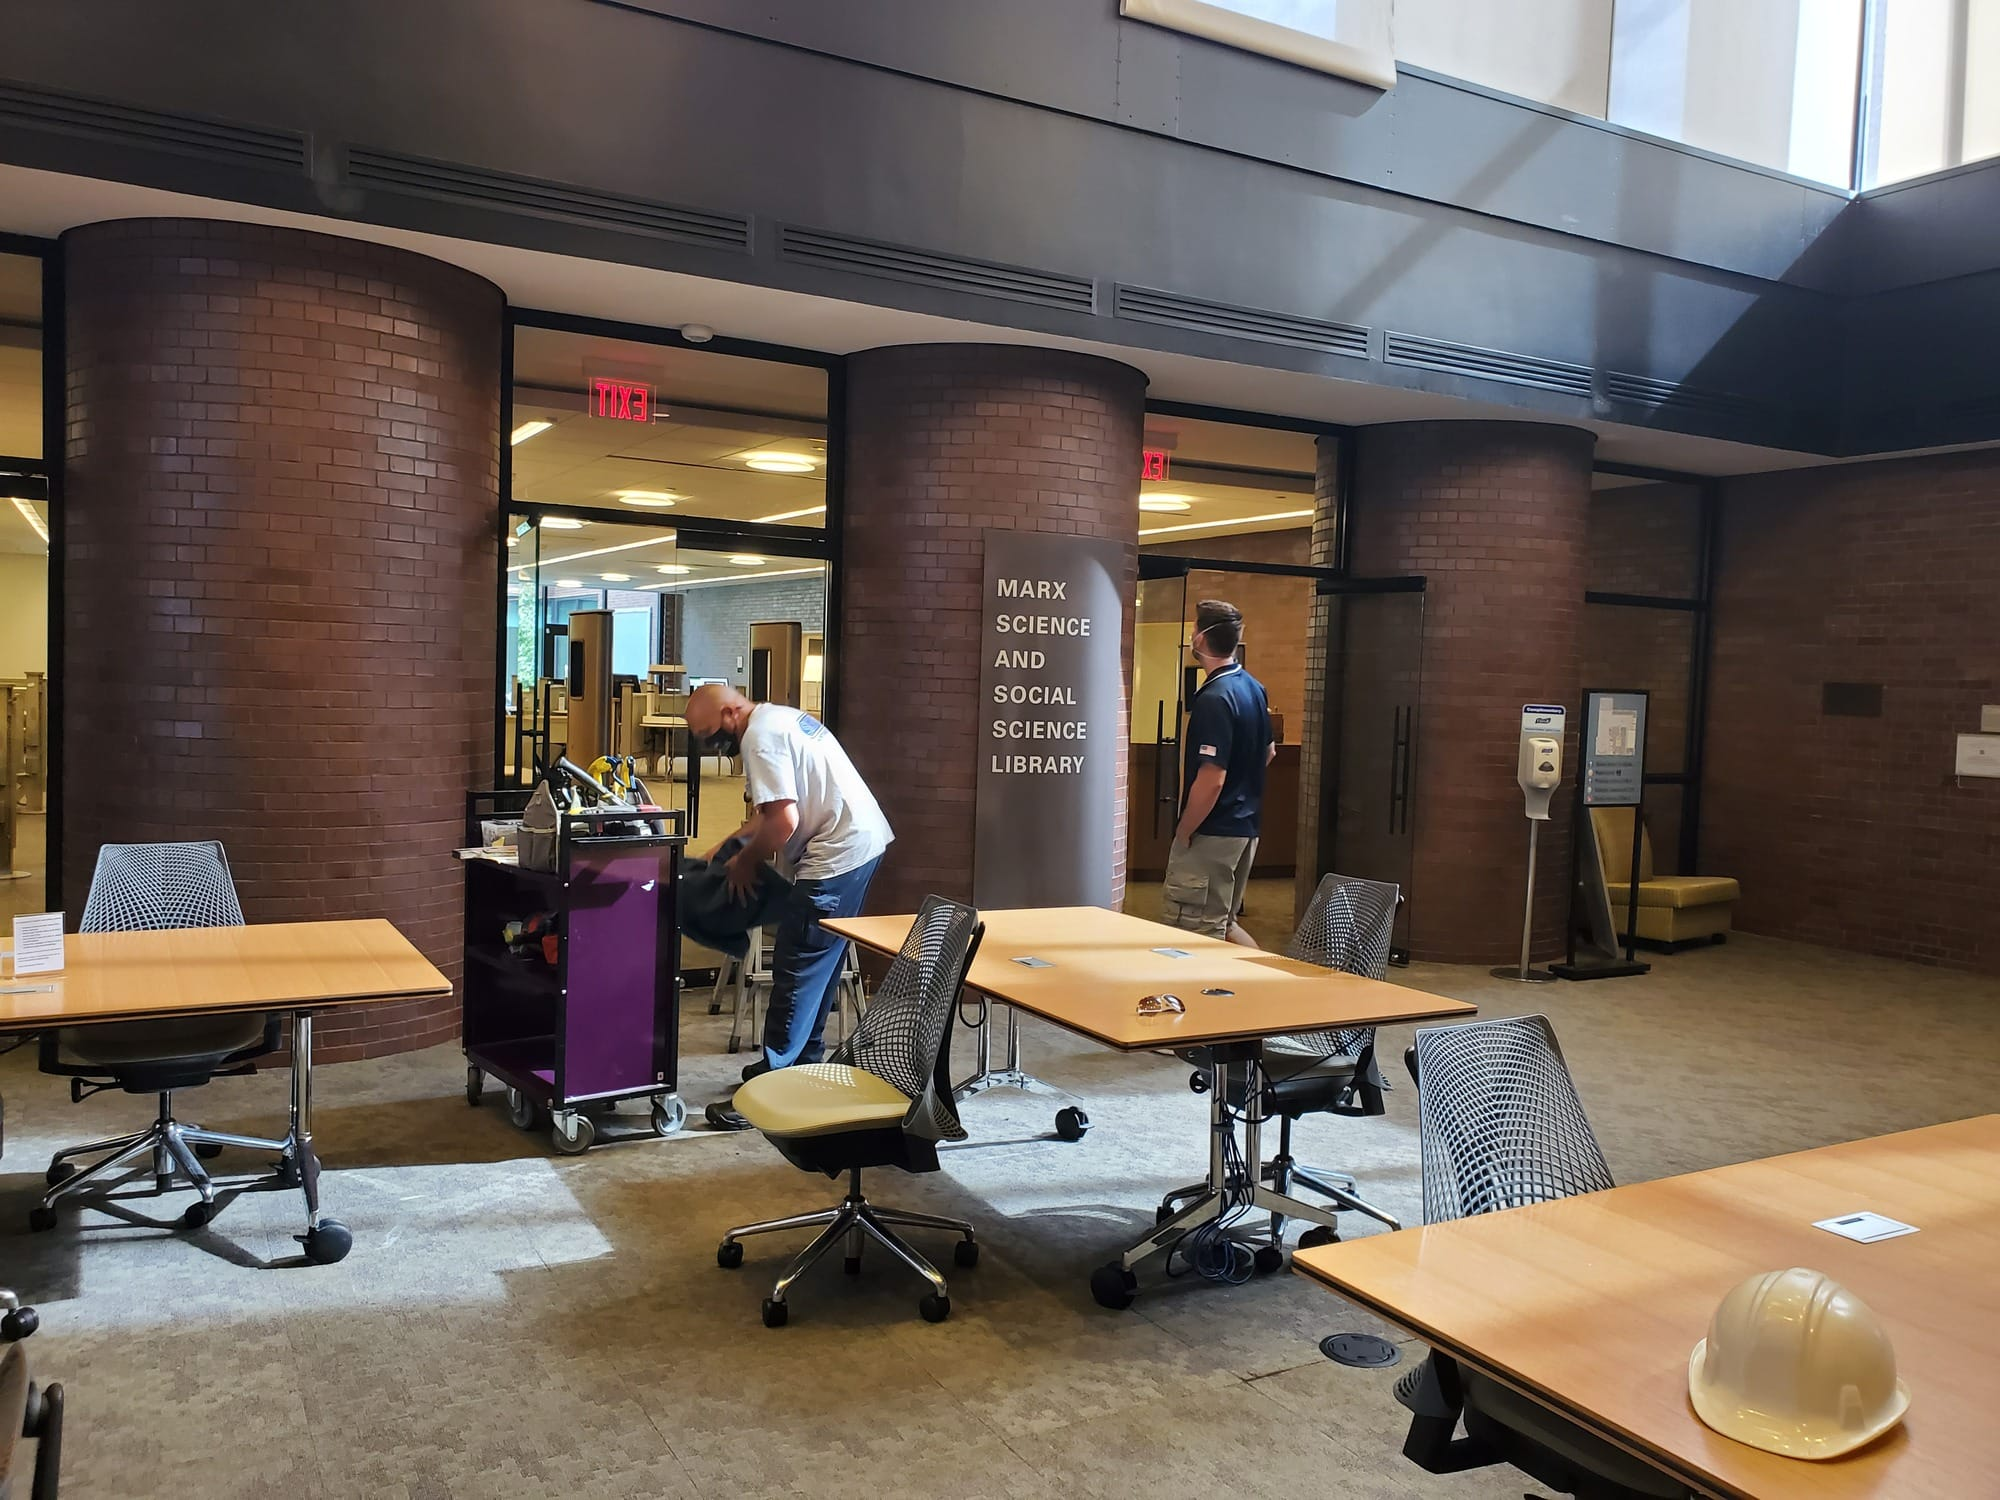 Workers installed signage reading Marx Science and Social Science Library.